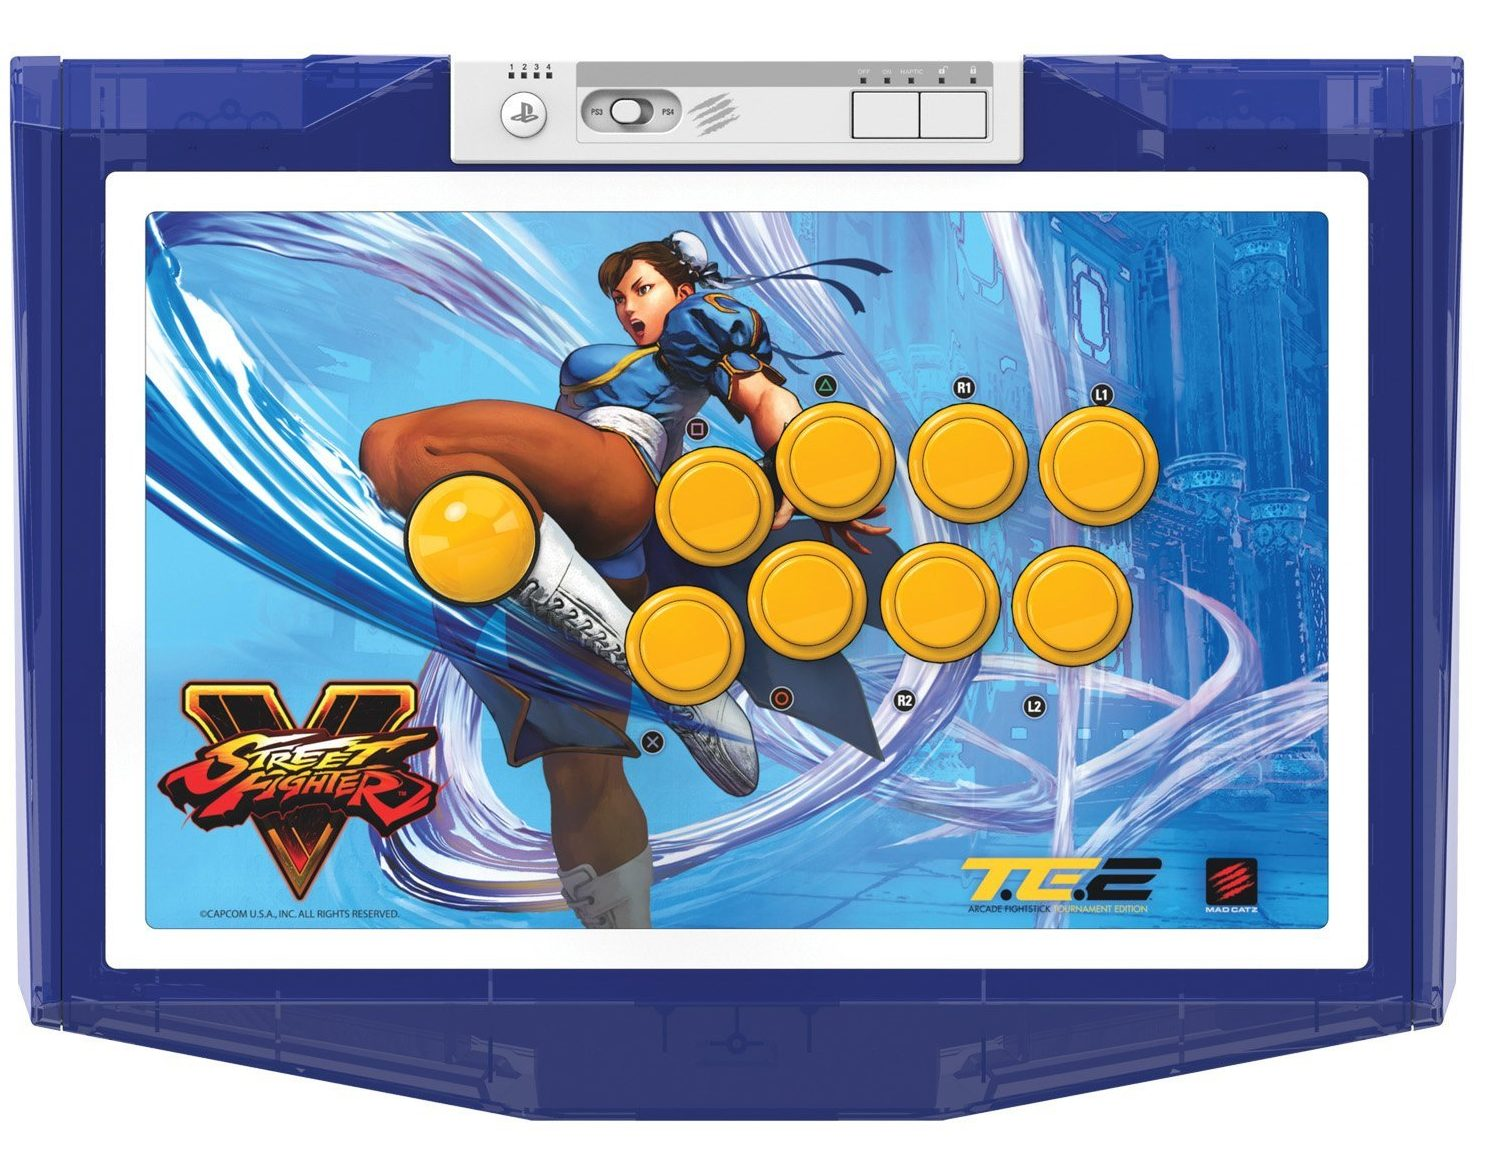 Mad Catz Street Fighter V Chun-Li Arcade Fight Stick Tournament Edition 2